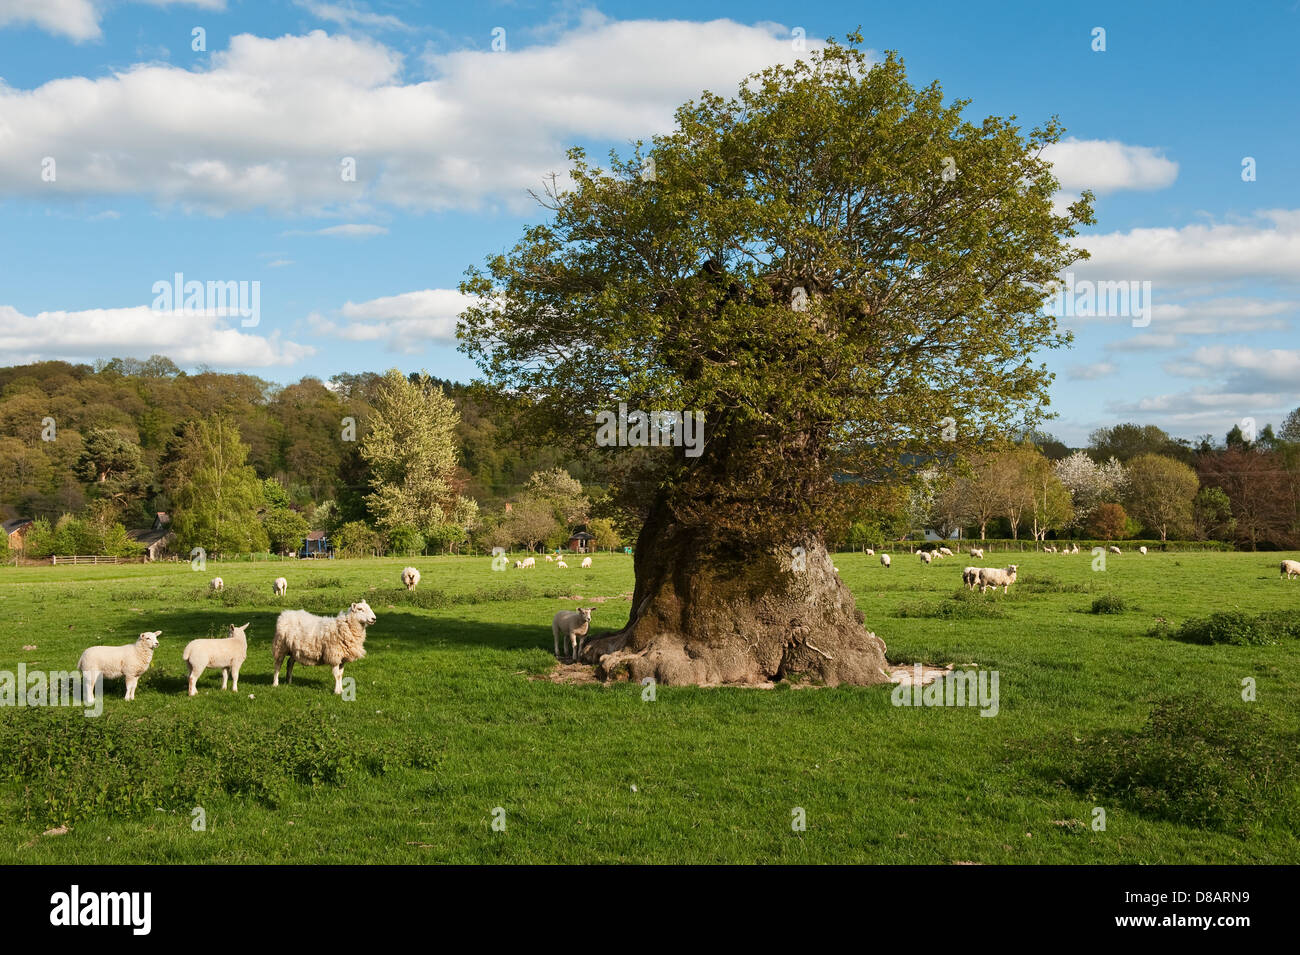 An ancient pollarded oak tree at Lingen, Herefordshire, UK - Stock Image